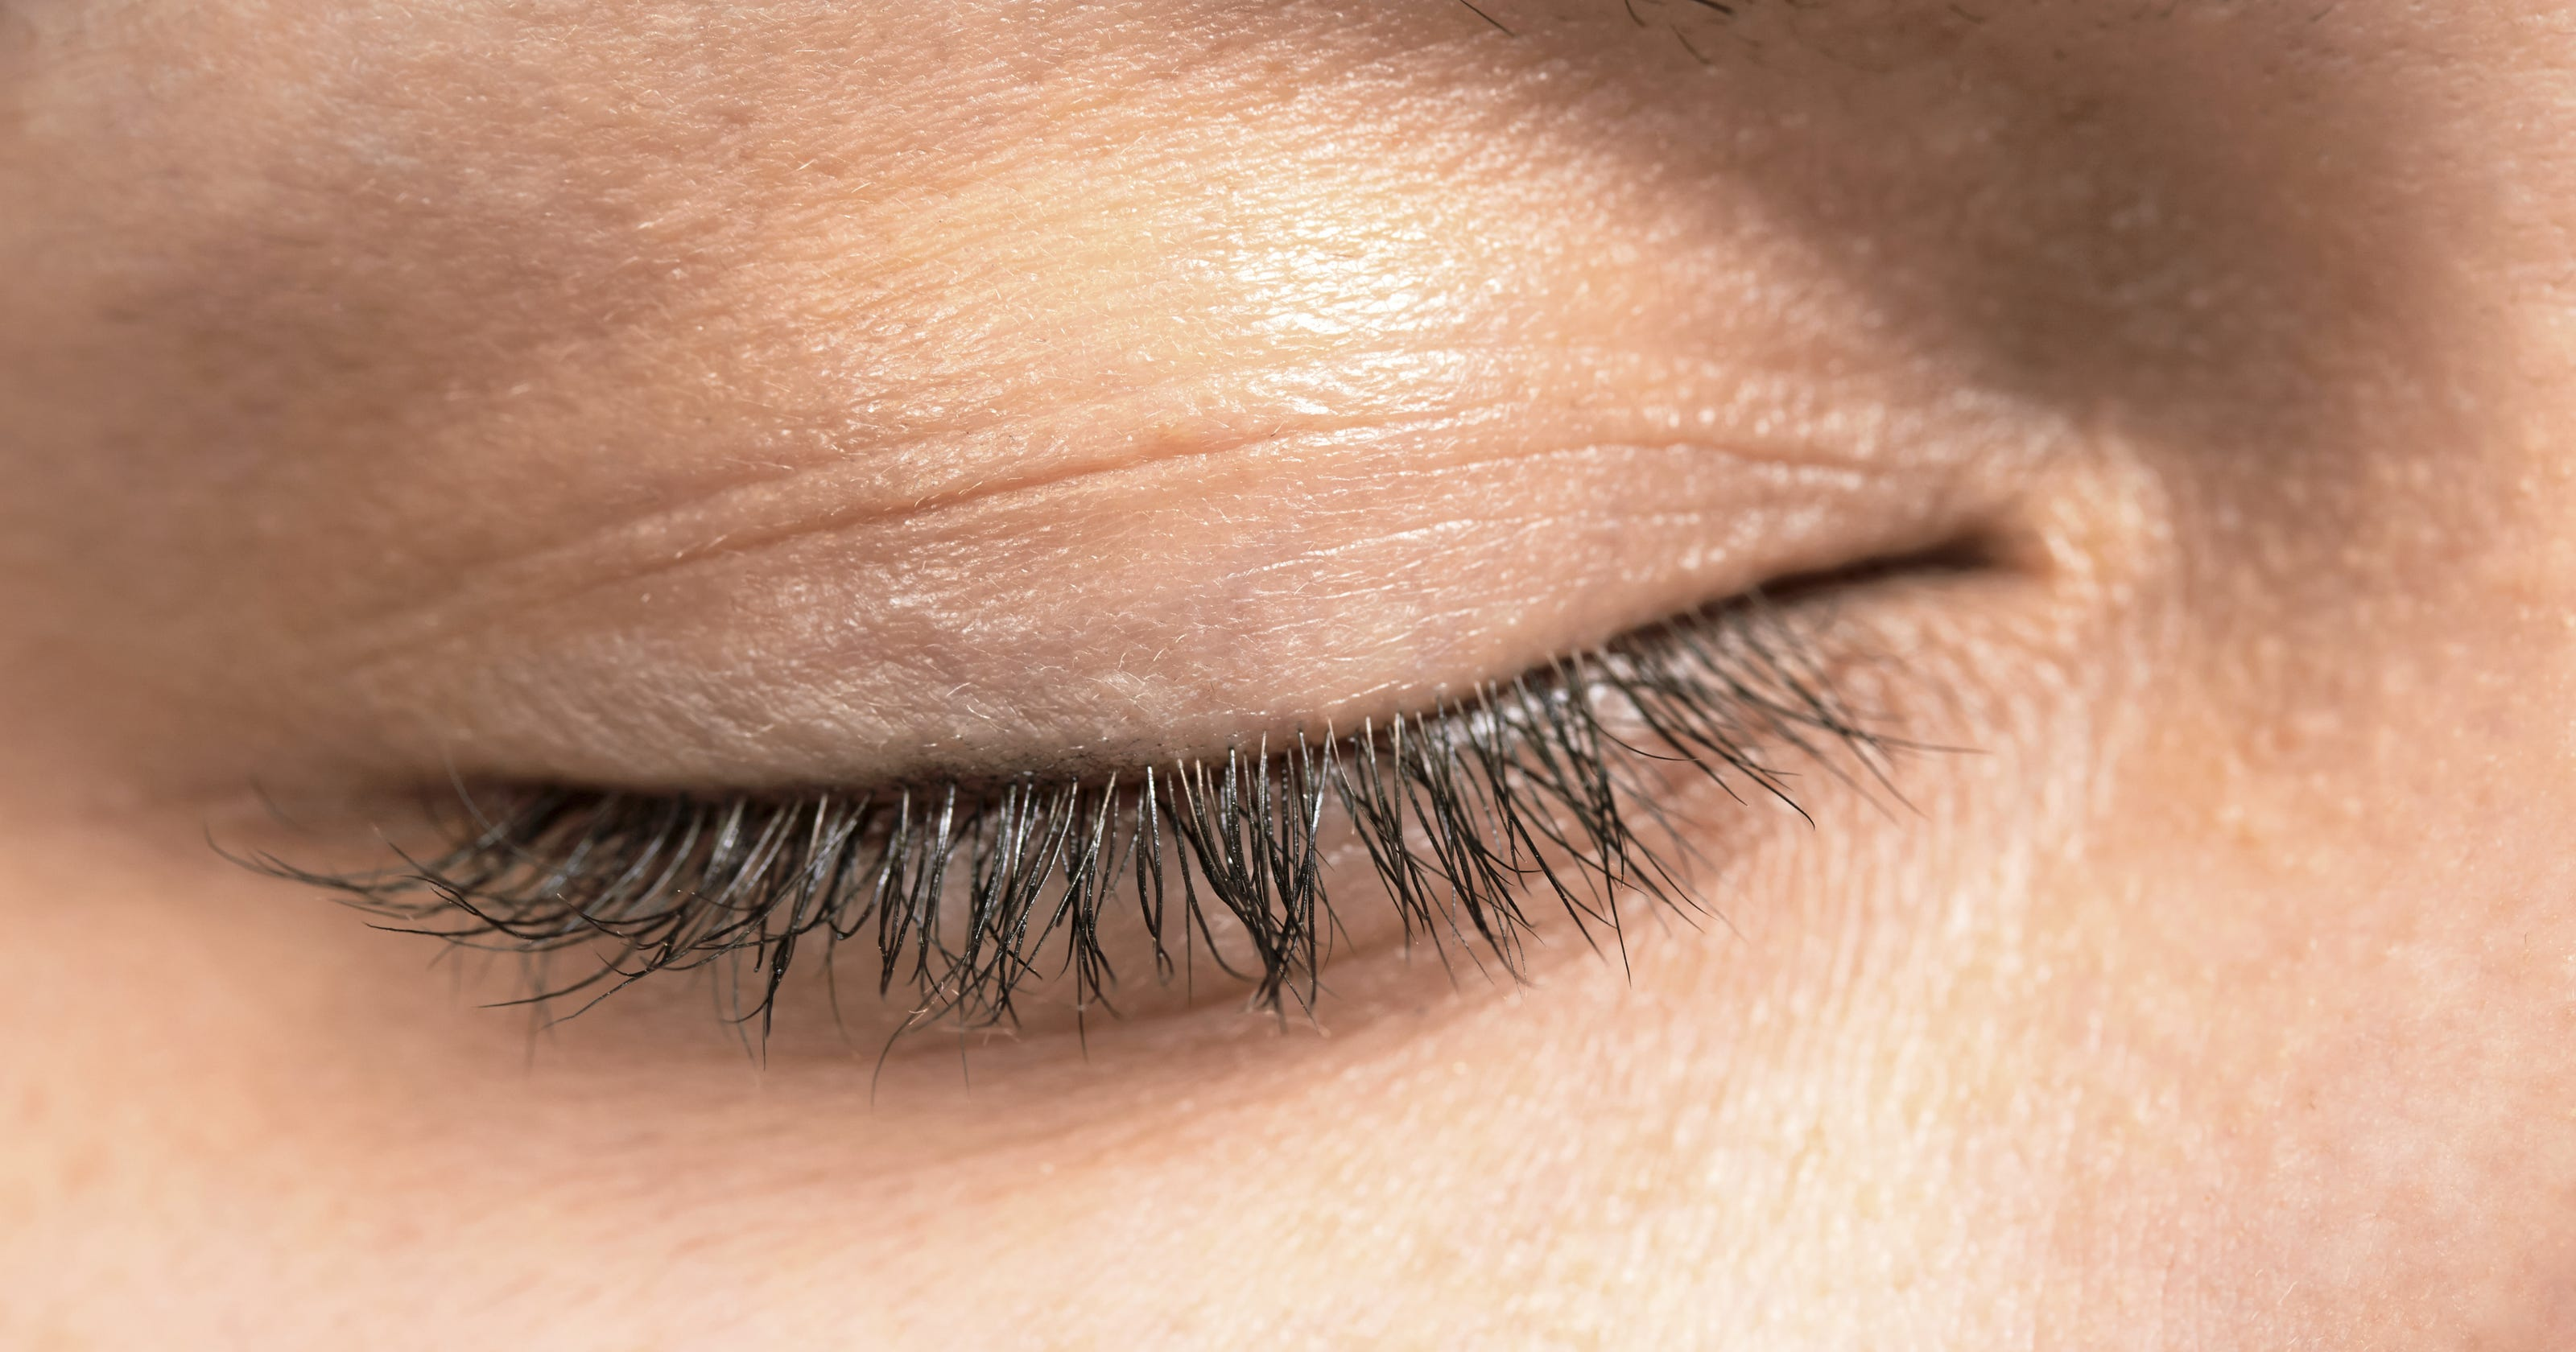 Sagging Eyelids More Common With Certain Traits